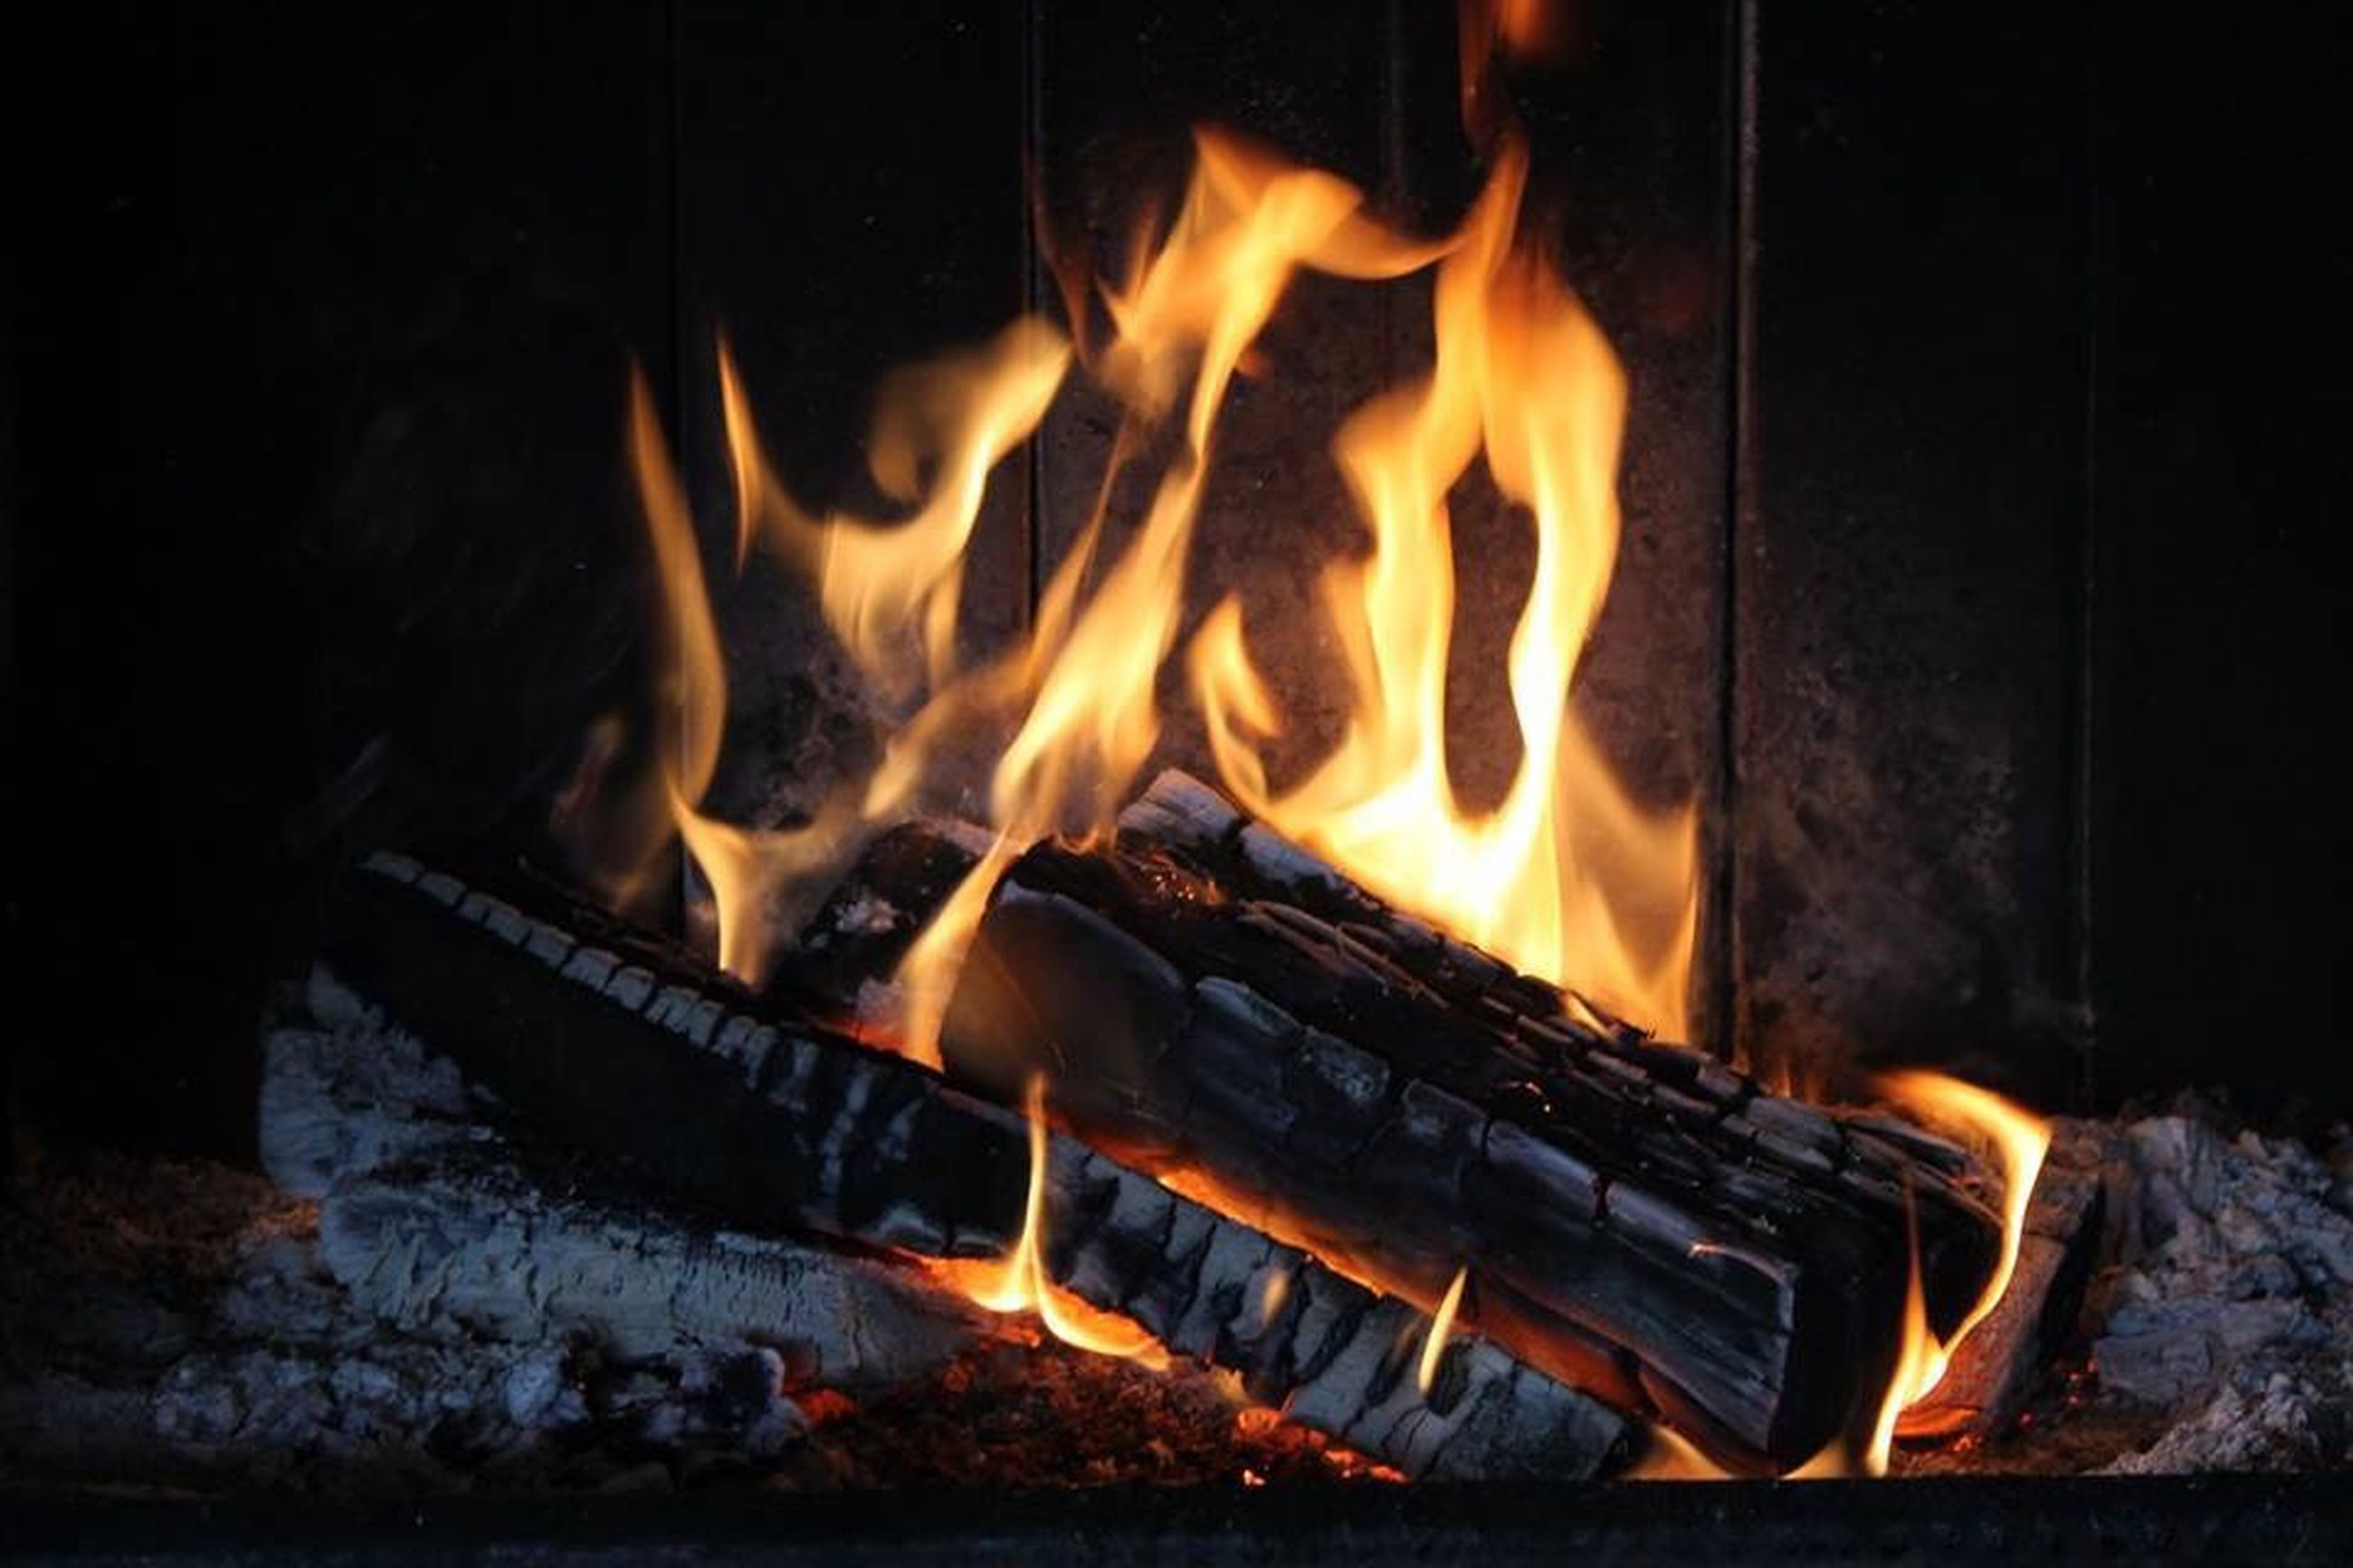 flame, burning, heat - temperature, fire - natural phenomenon, orange color, bonfire, fire, firewood, glowing, heat, night, campfire, motion, high angle view, no people, outdoors, auto post production filter, close-up, wood - material